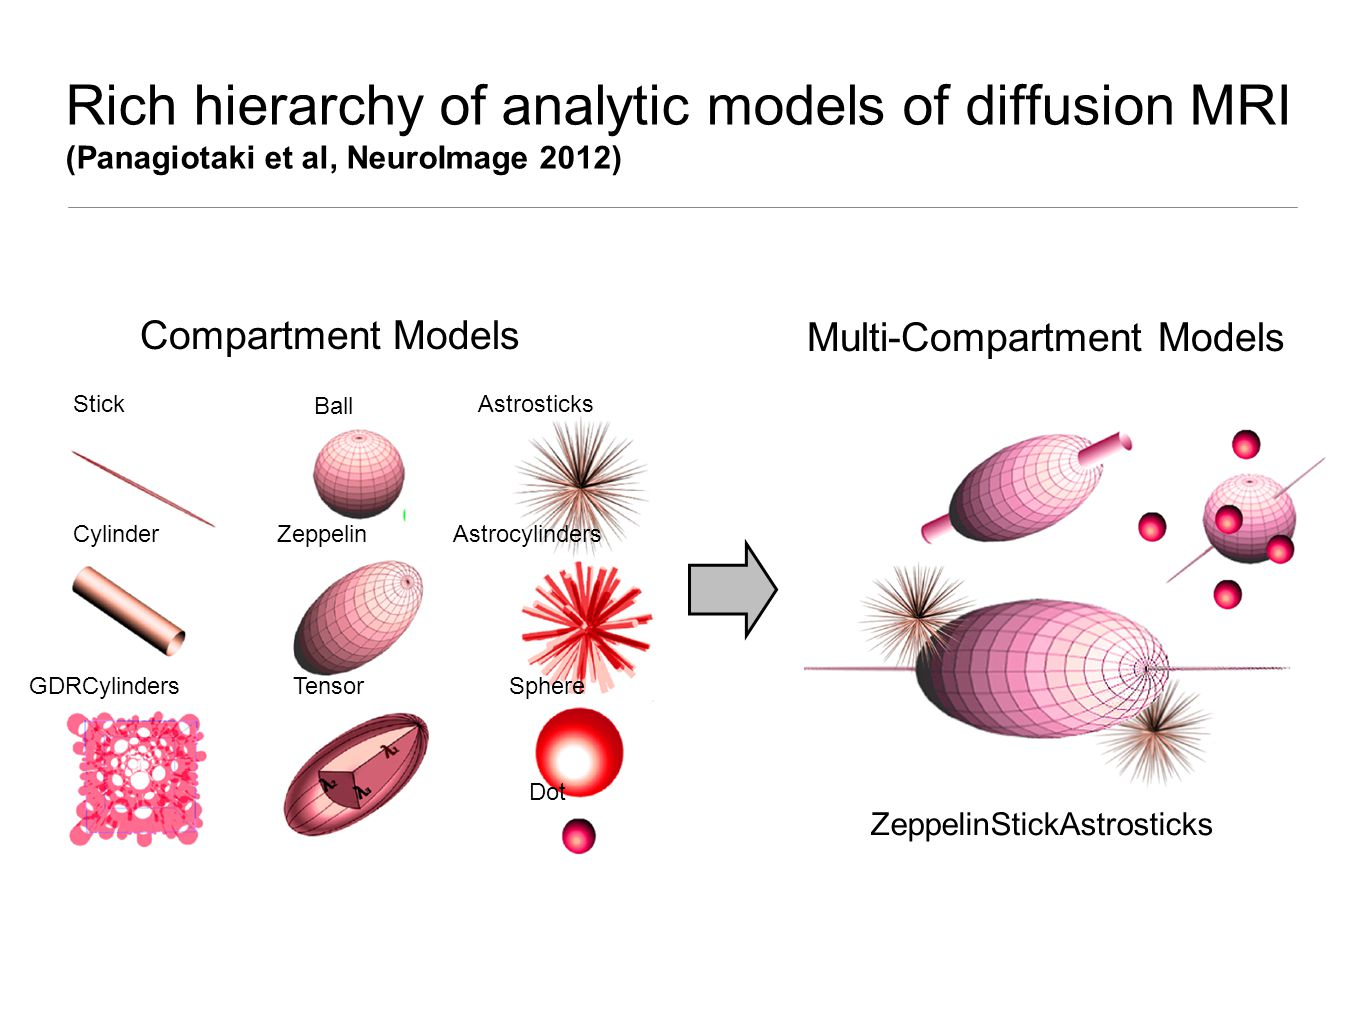 Rich hierarchy of analytic models of diffusion MRI (Panagiotaki et al, NeuroImage 2012) Stick Cylinder GDRCylinders Ball Astrosticks Astrocylinders Sphere Dot Zeppelin Tensor Compartment Models ZeppelinStickAstrosticks Multi-Compartment Models